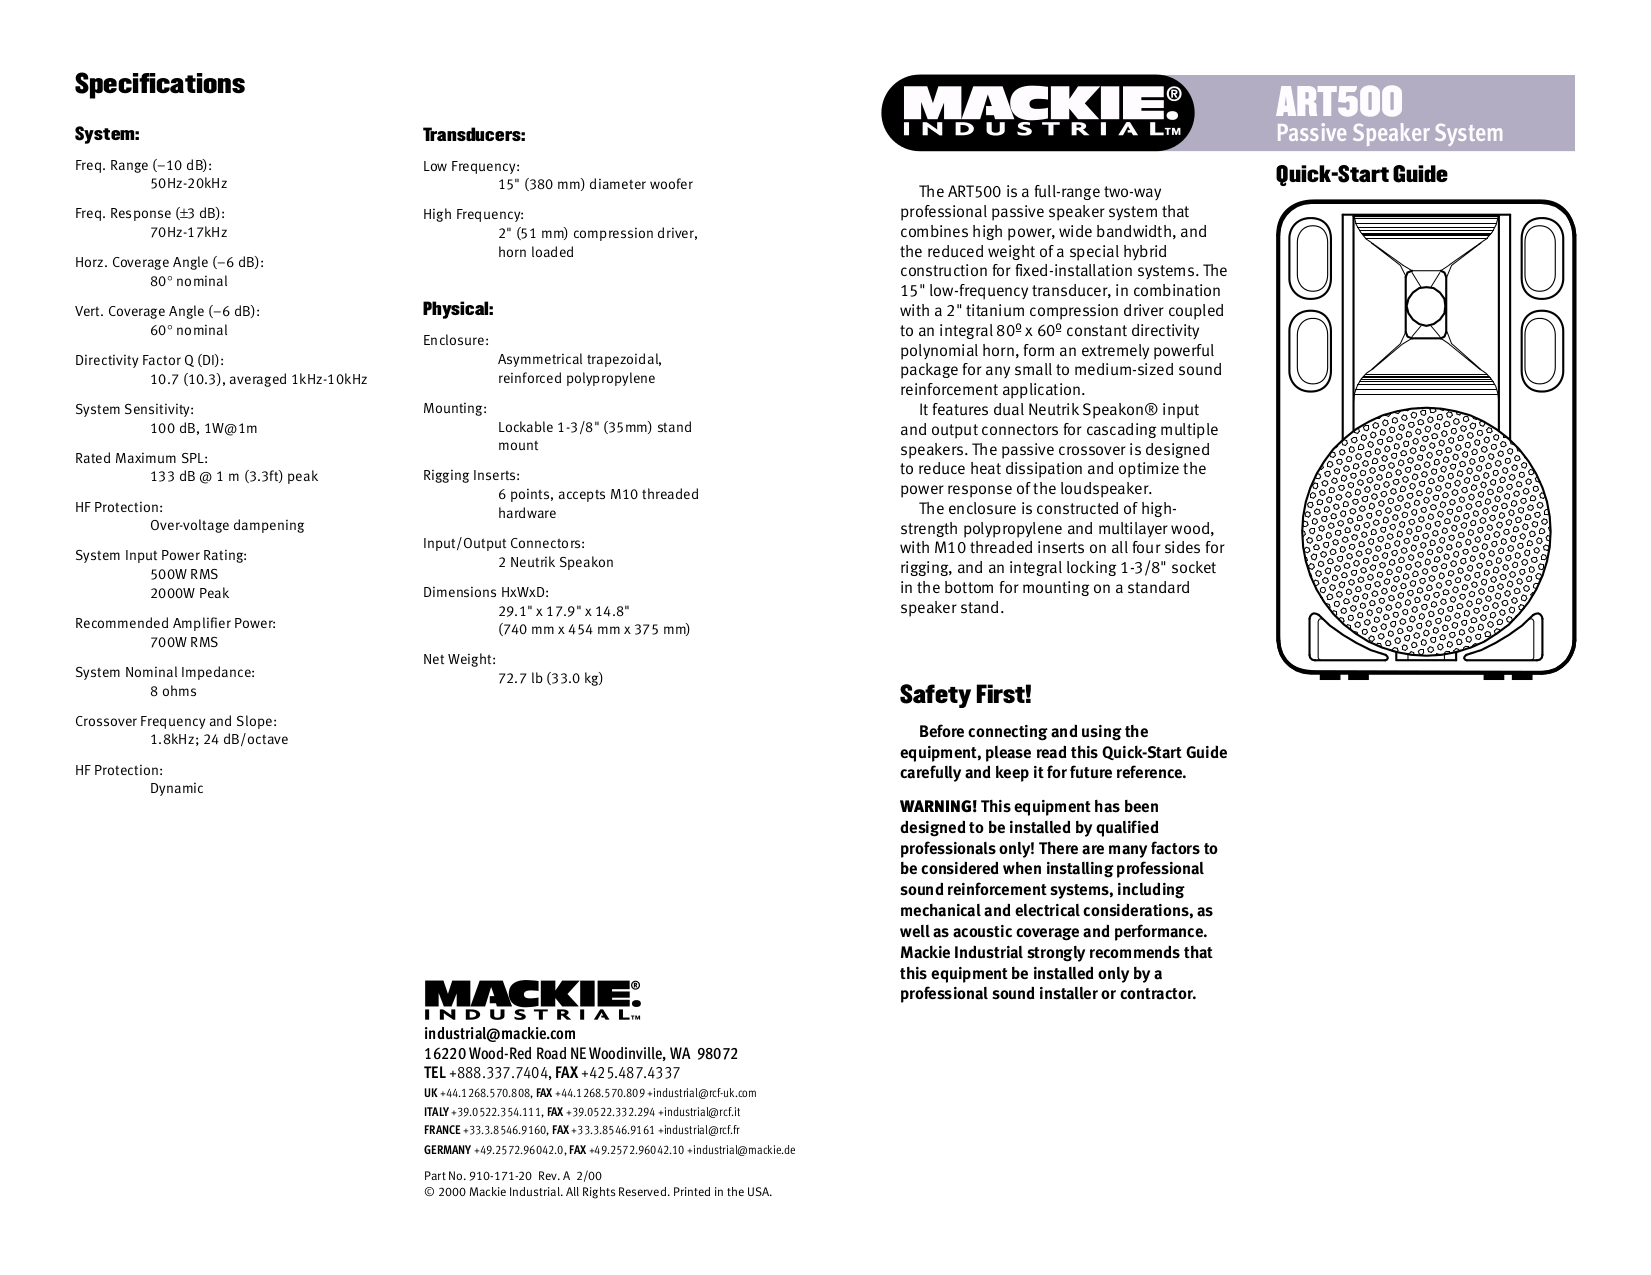 pdf for Mackie Speaker System Art Series ART500 manual